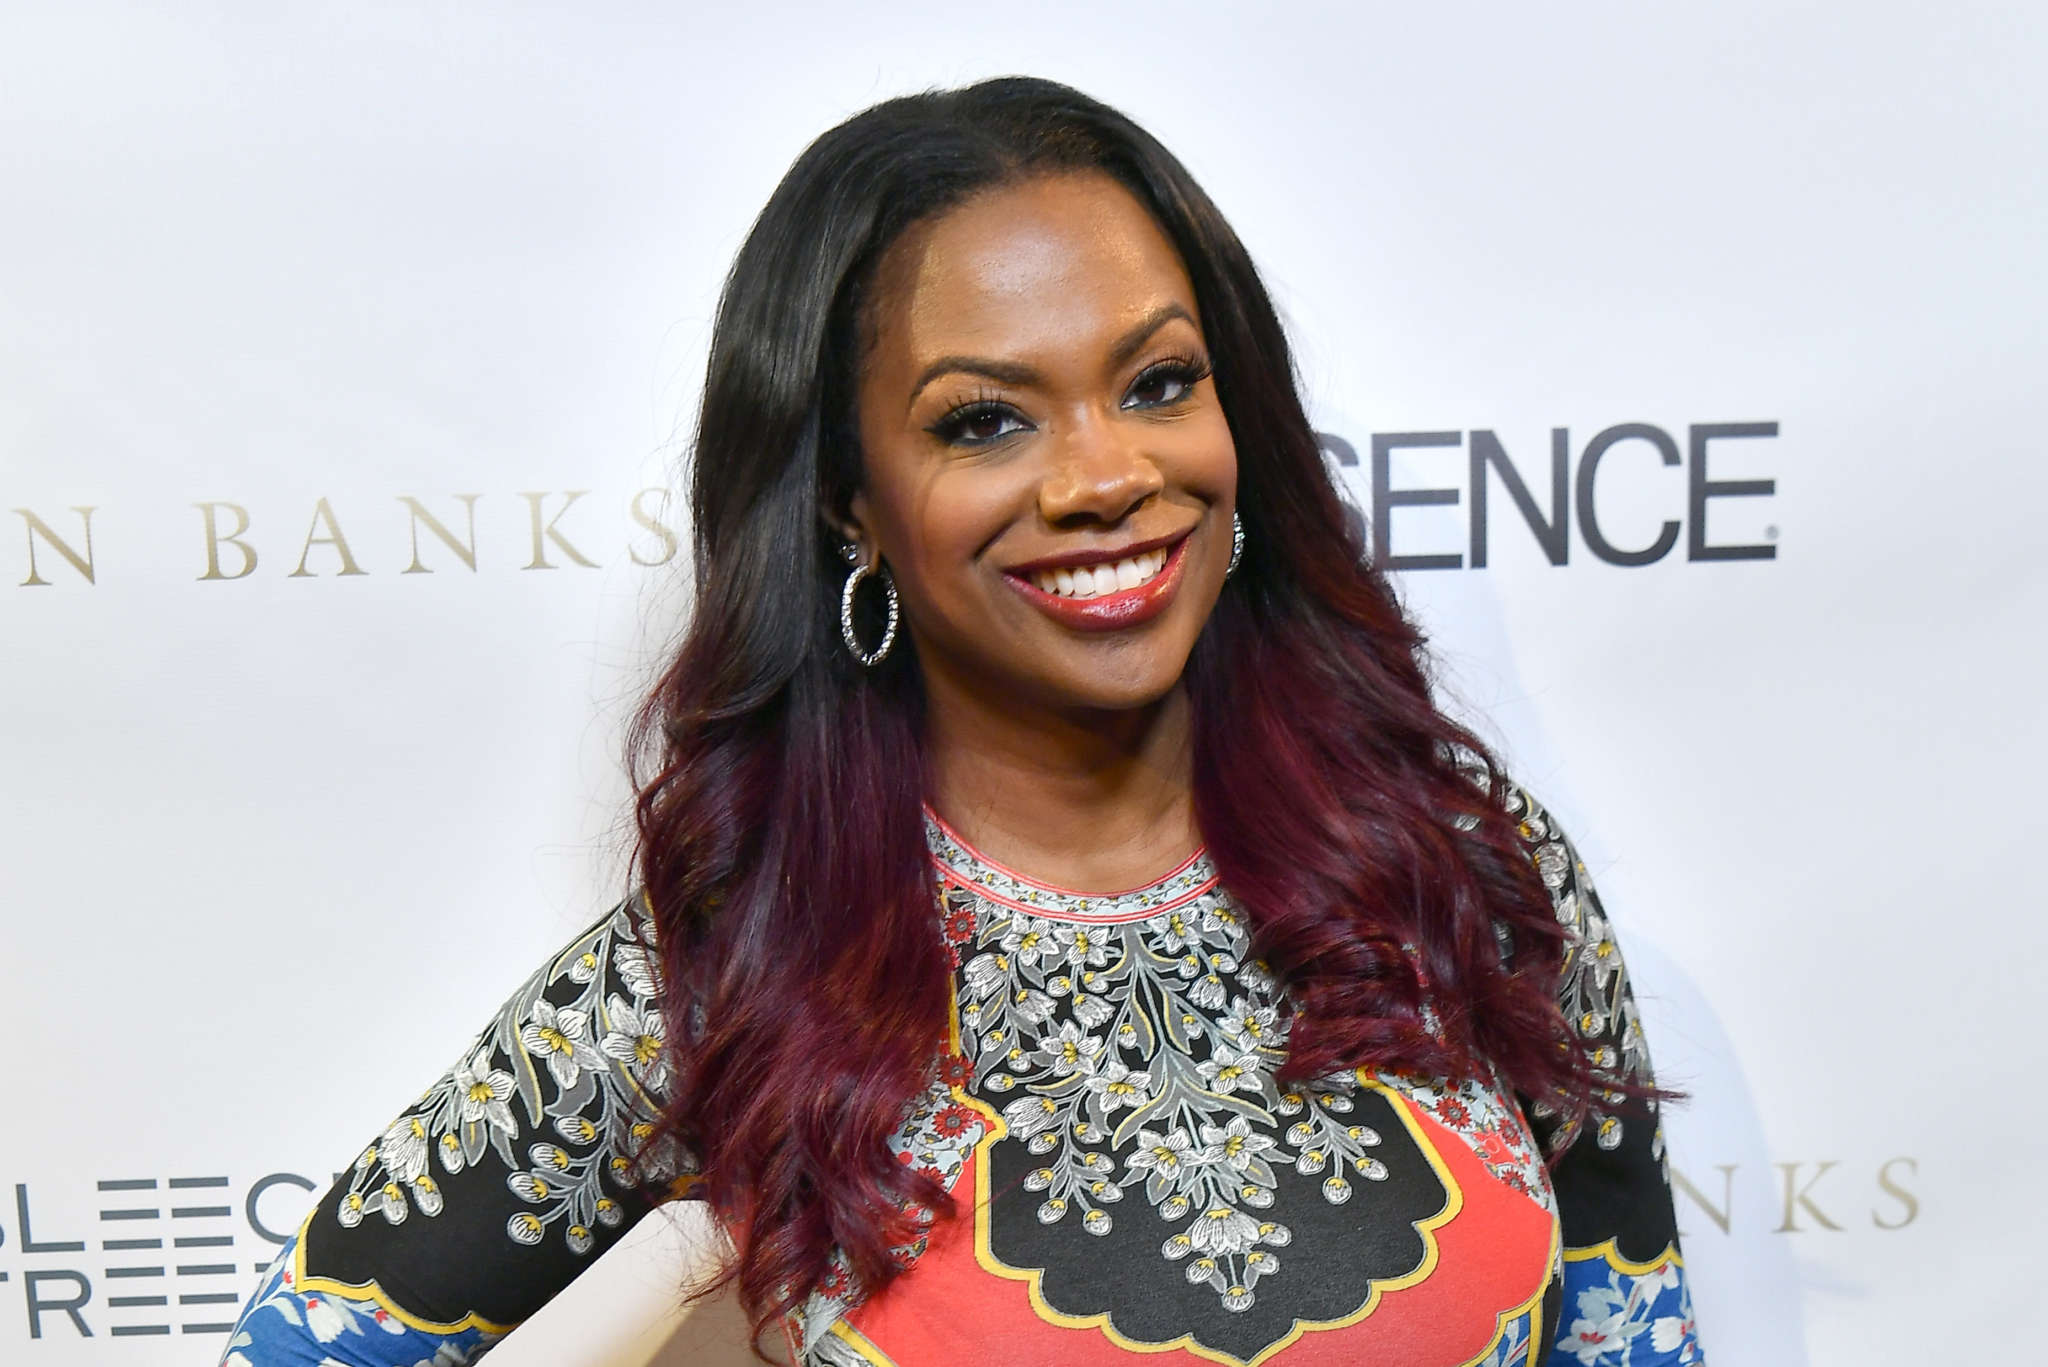 """kandi-burruss-fans-are-convinced-that-shes-teasing-them-following-the-latest-photo-that-she-shared"""